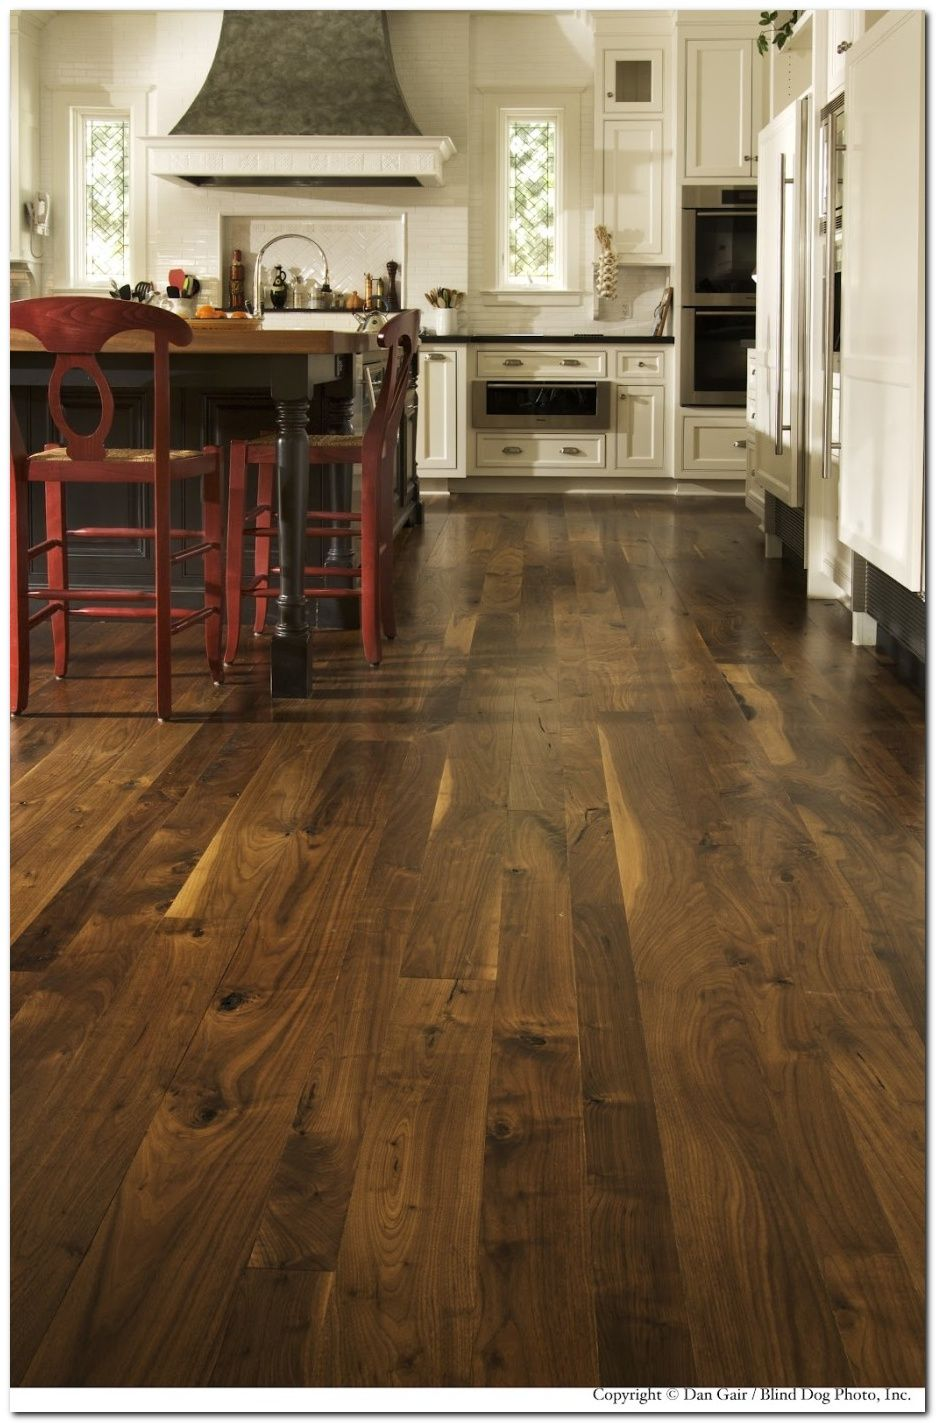 Simple laminate flooring choose simple laminate flooring in kitchen and 50+ ideas YGXHPAH